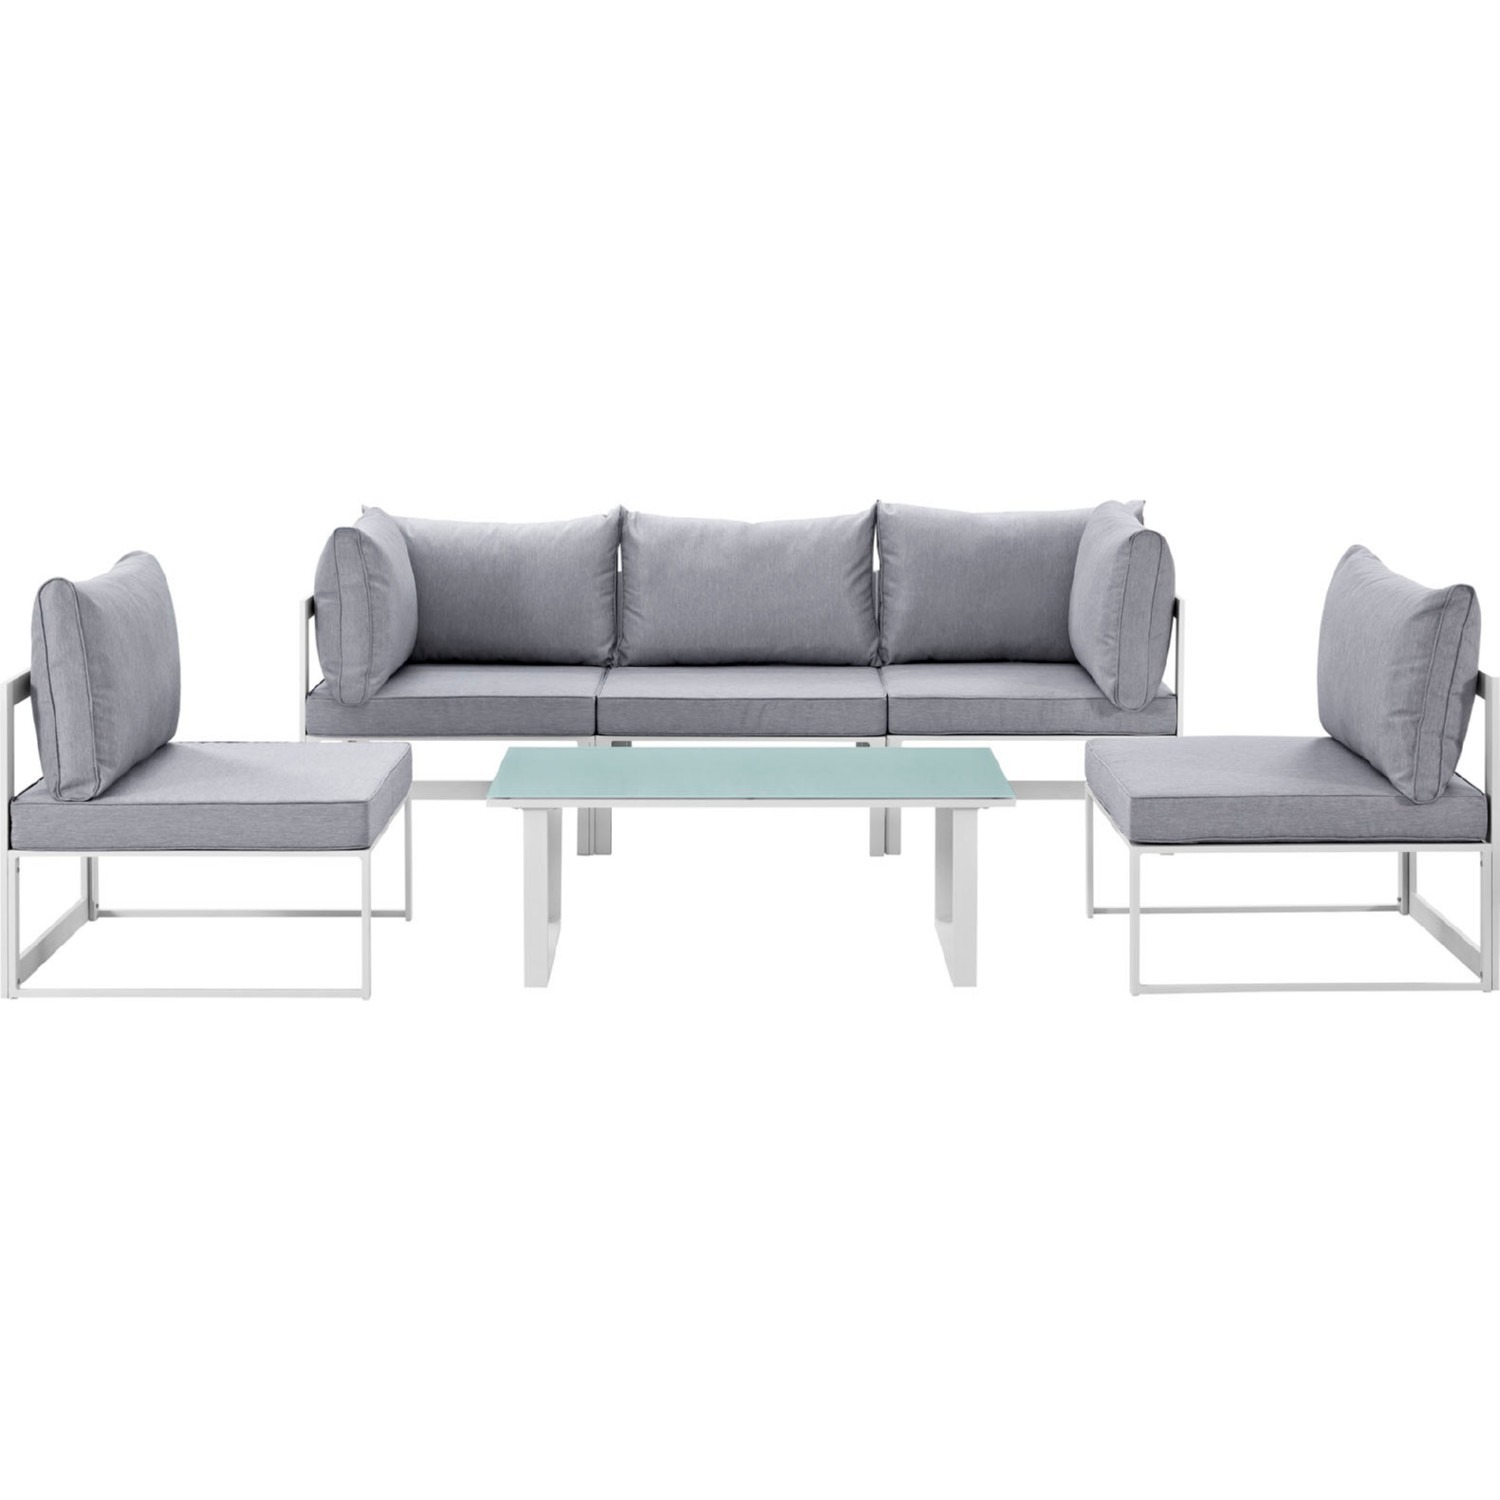 6-Piece Outdoor Sectional In Gray Cushion Fabric - image-1